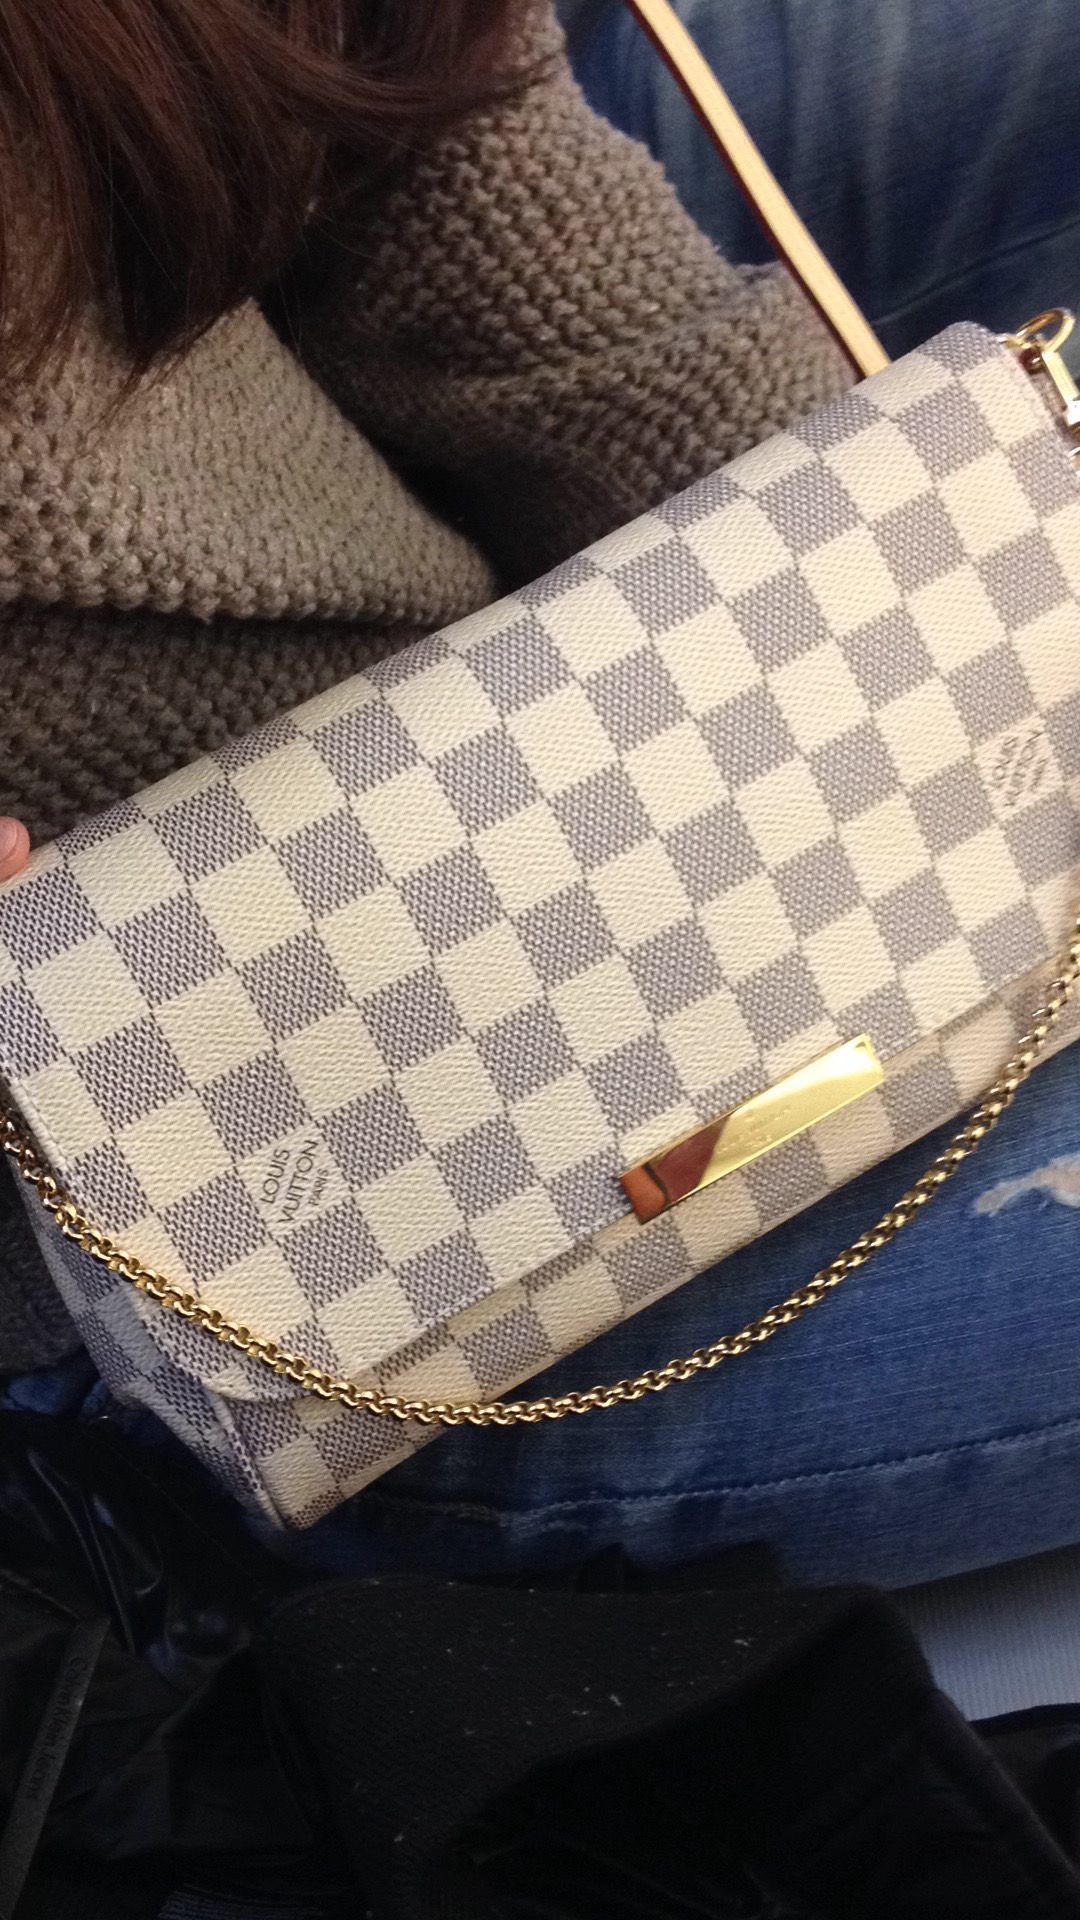 a135240c1b5b Louis Vuitton Favorite MM damier azur LV